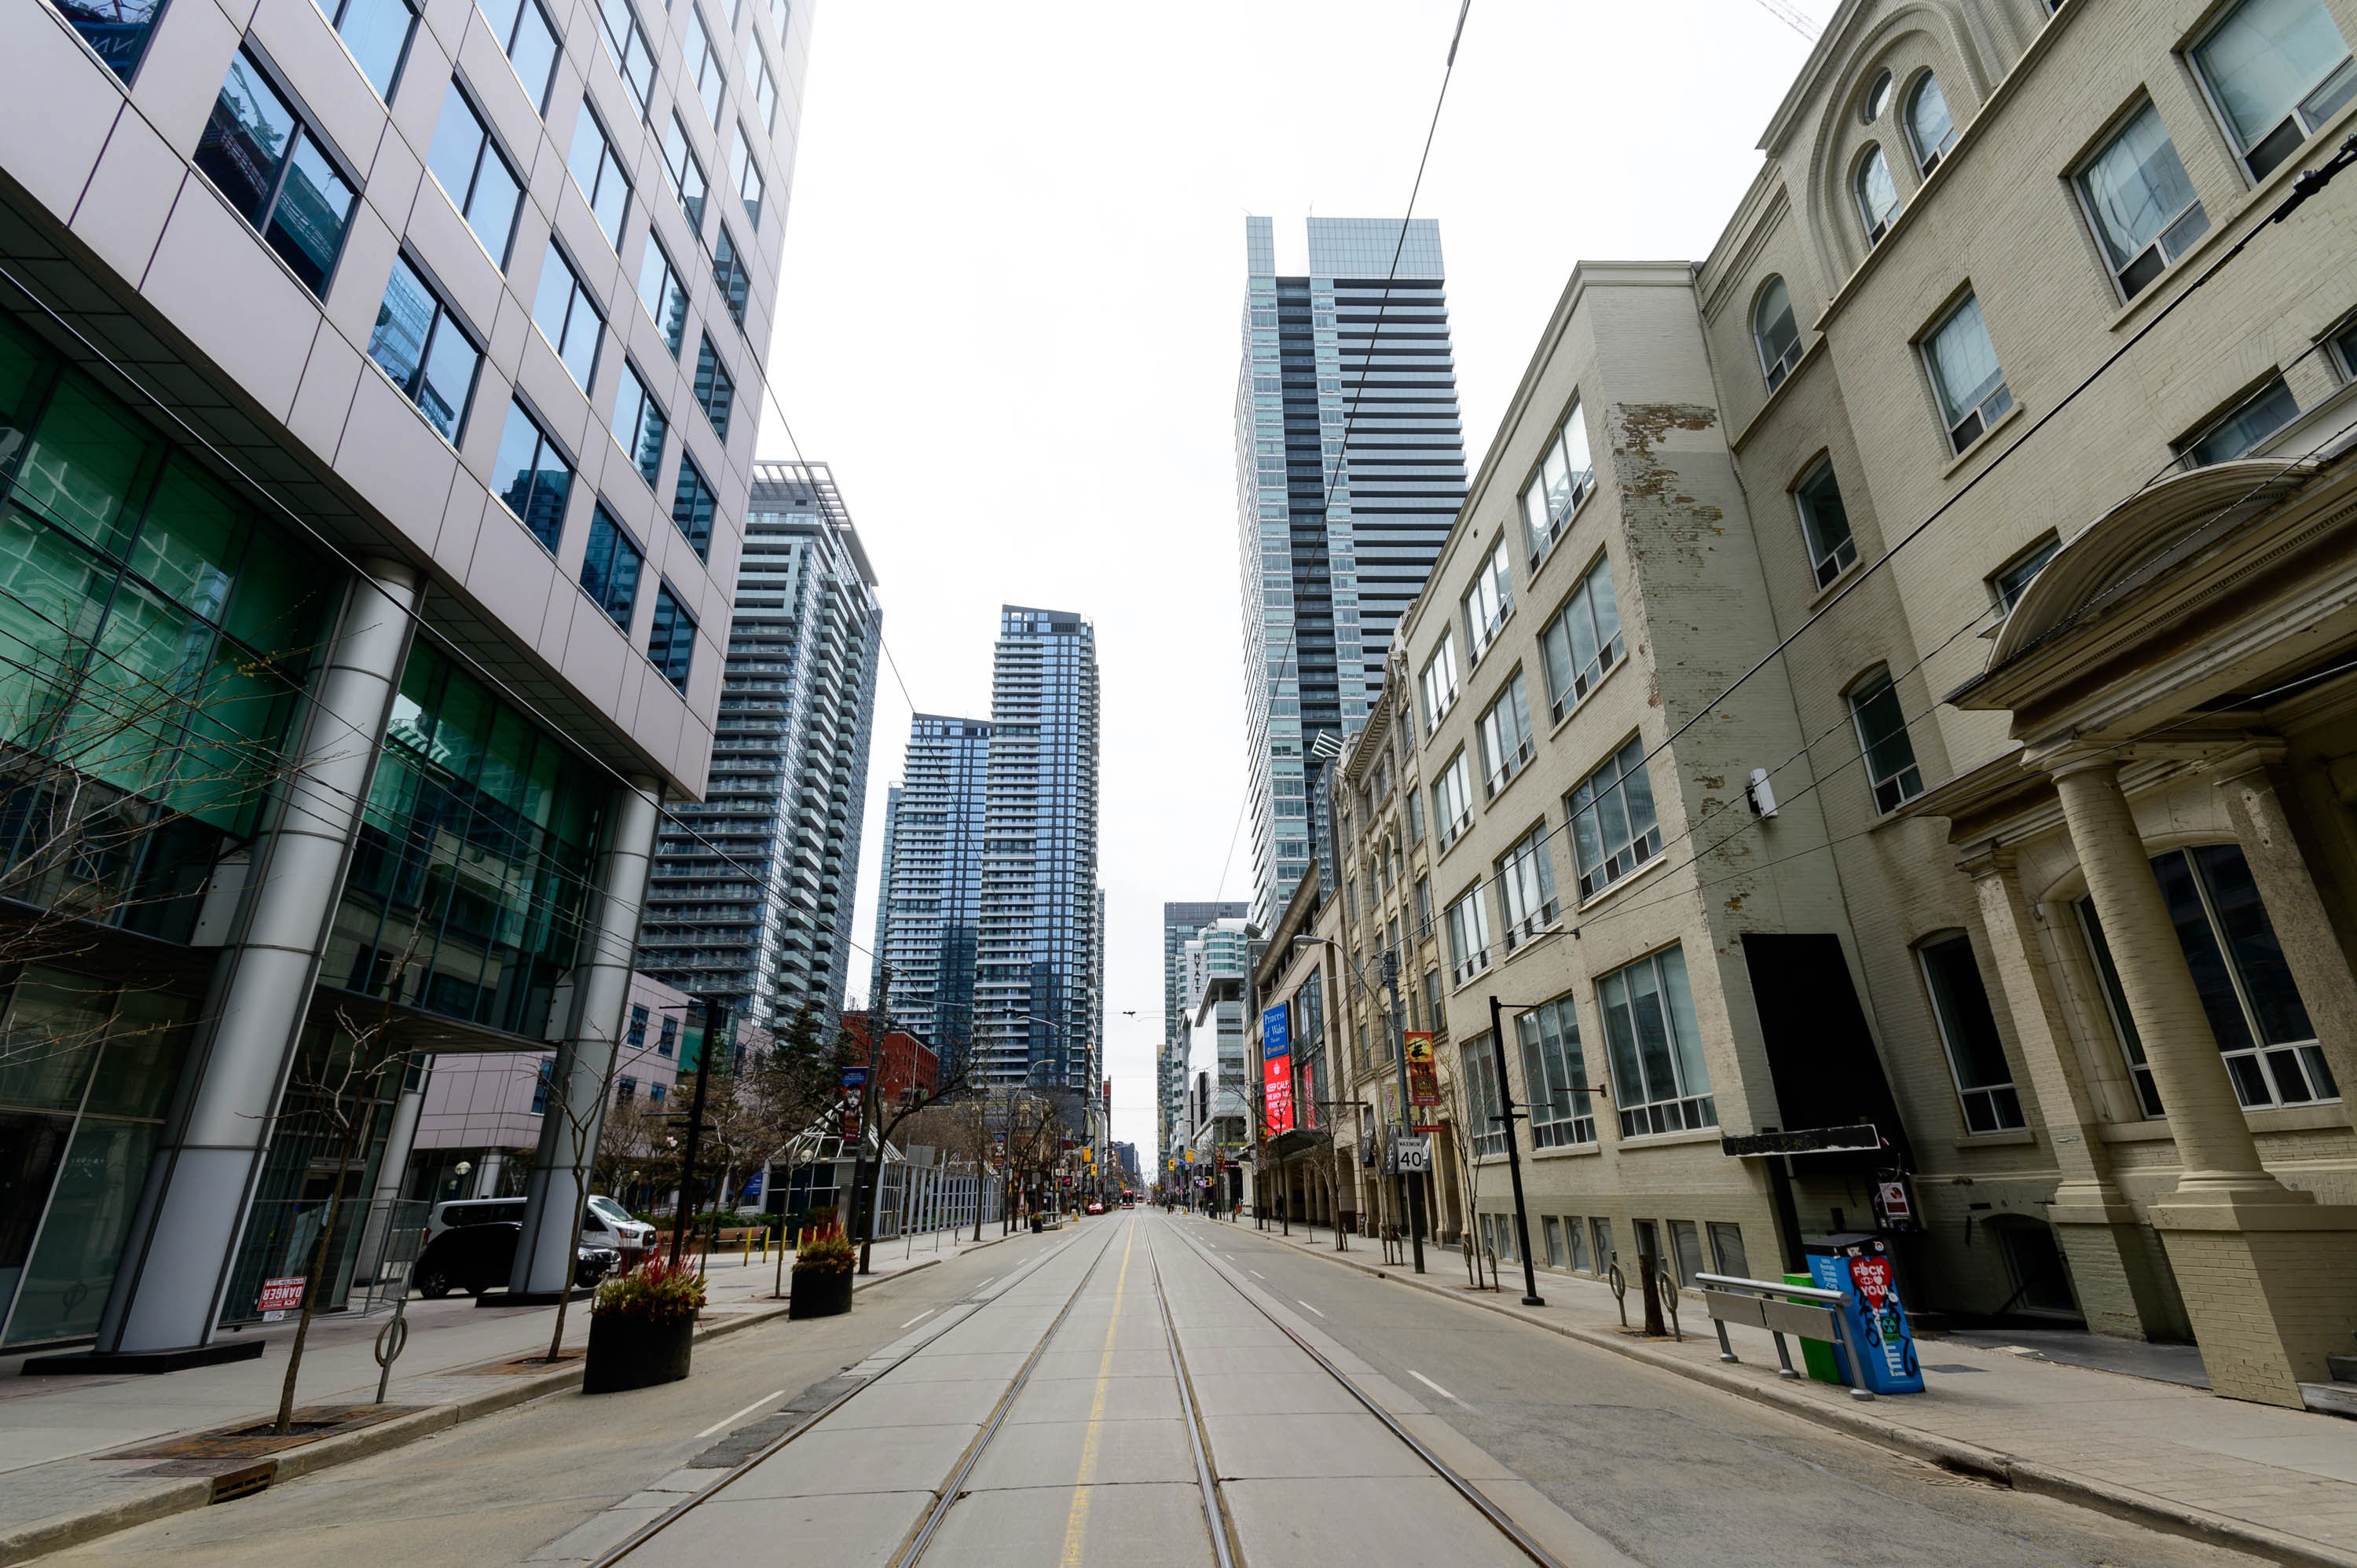 An empty street is seen in Toronto, Canada on April 23.